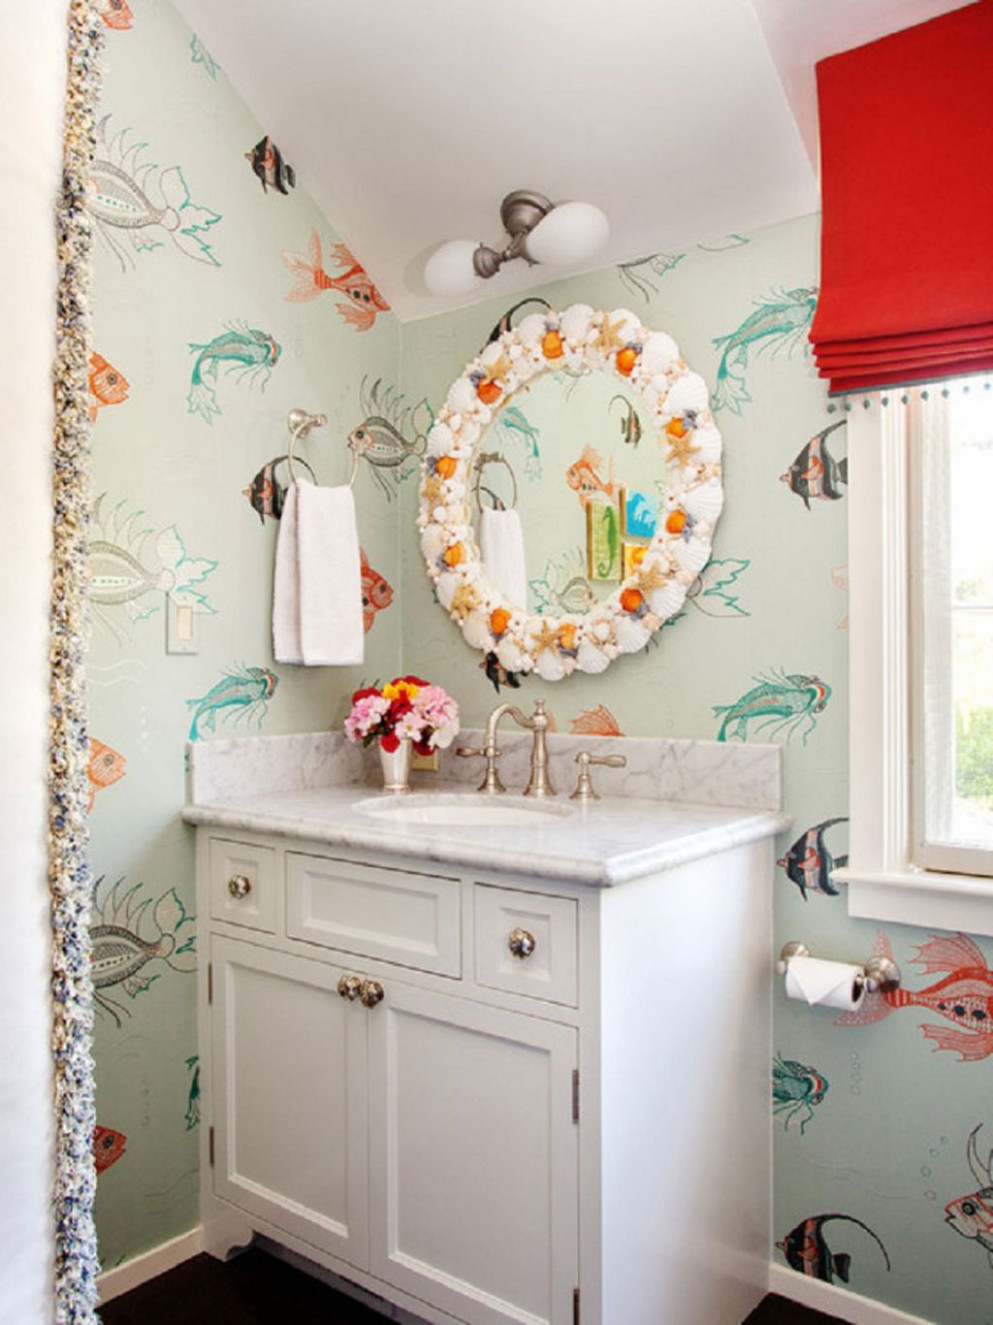 Unique Kids Bathroom Decor Ideas - Amaza Design